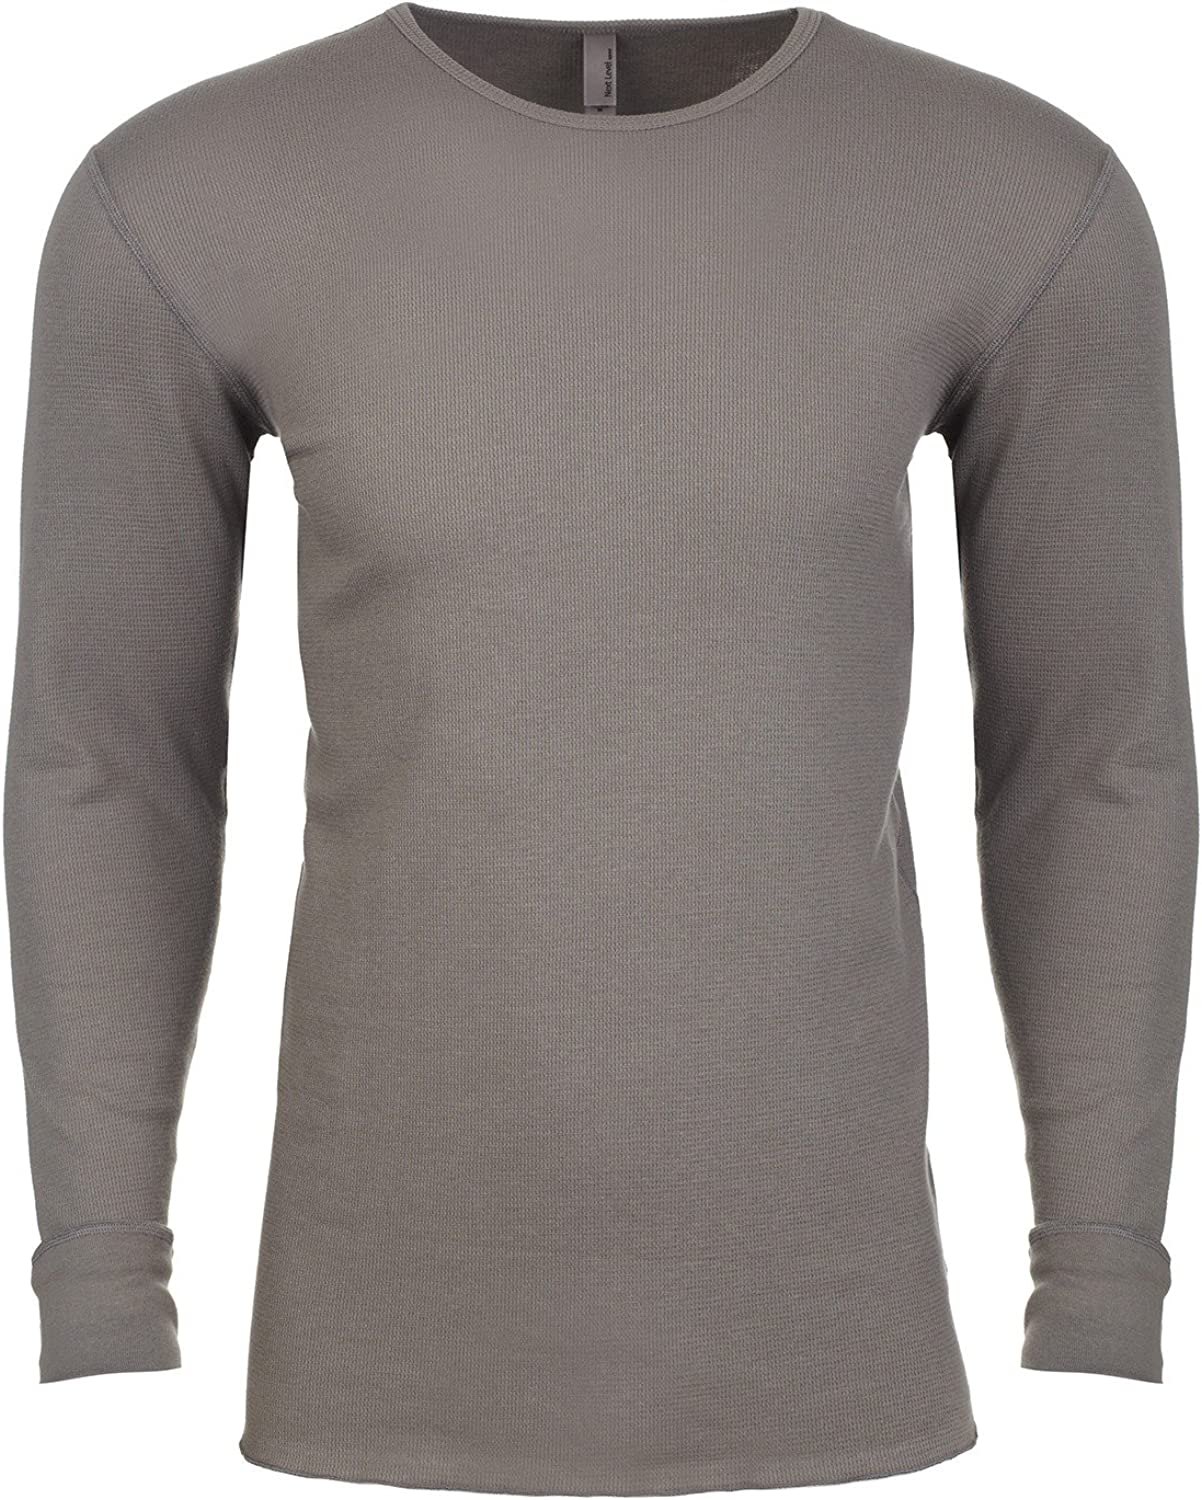 Product of Brand Next Level Adult Long-Sleeve Thermal - Warm Gray - L - (Instant Savings of 5% & More)